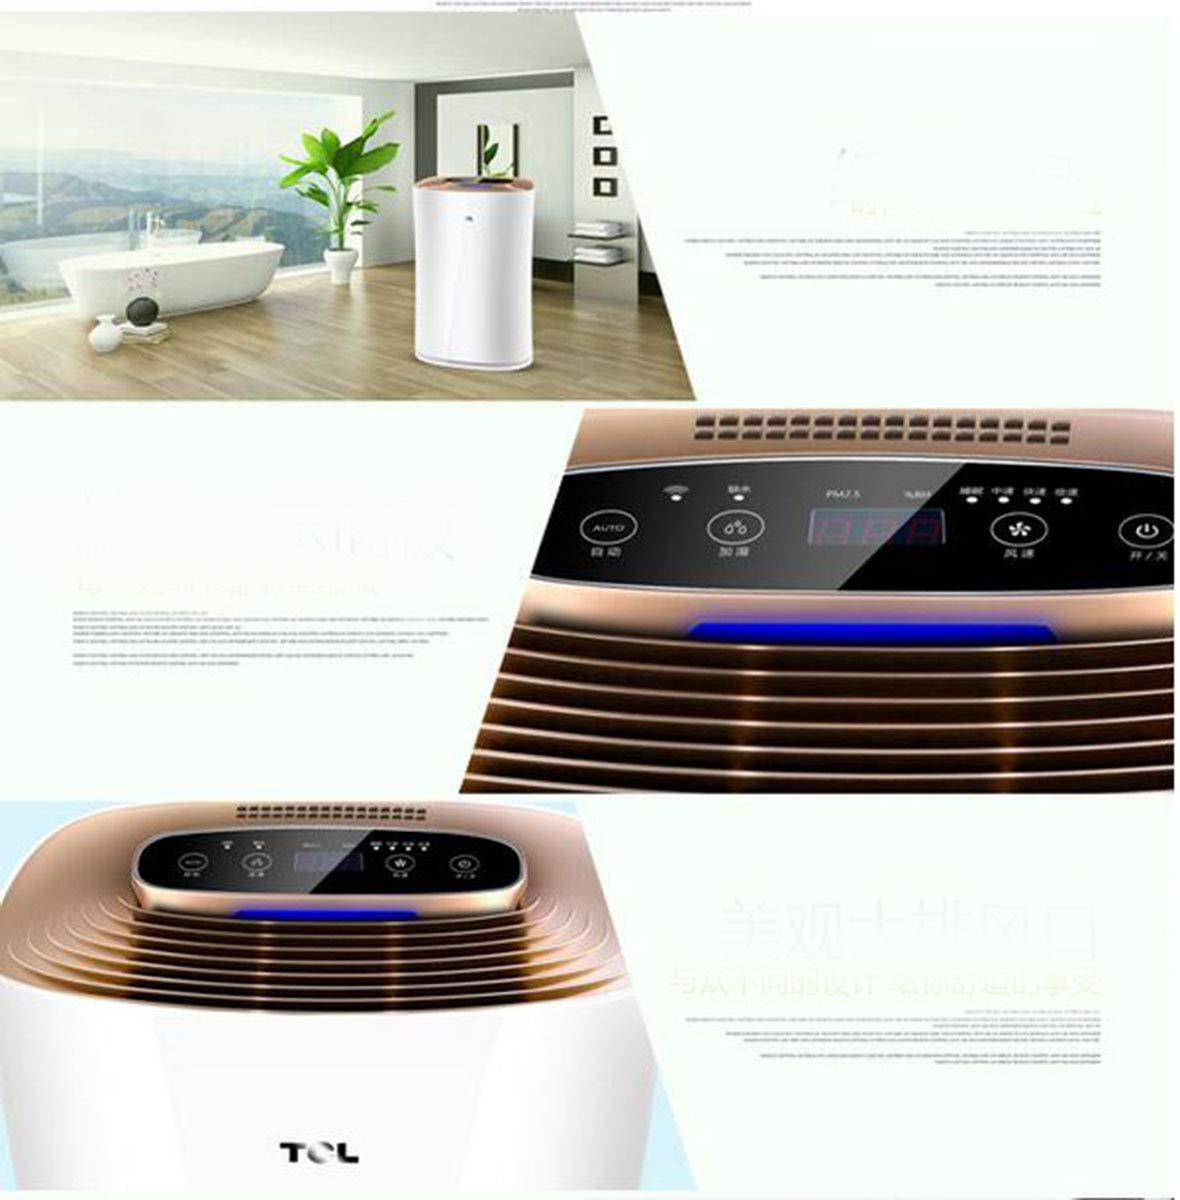 61O9LdNDl1L - TCLTKJ300F-S1 Intelligent Purifier Household In Addition To Formaldehyde PM2.5 Negative Ion Humidifier